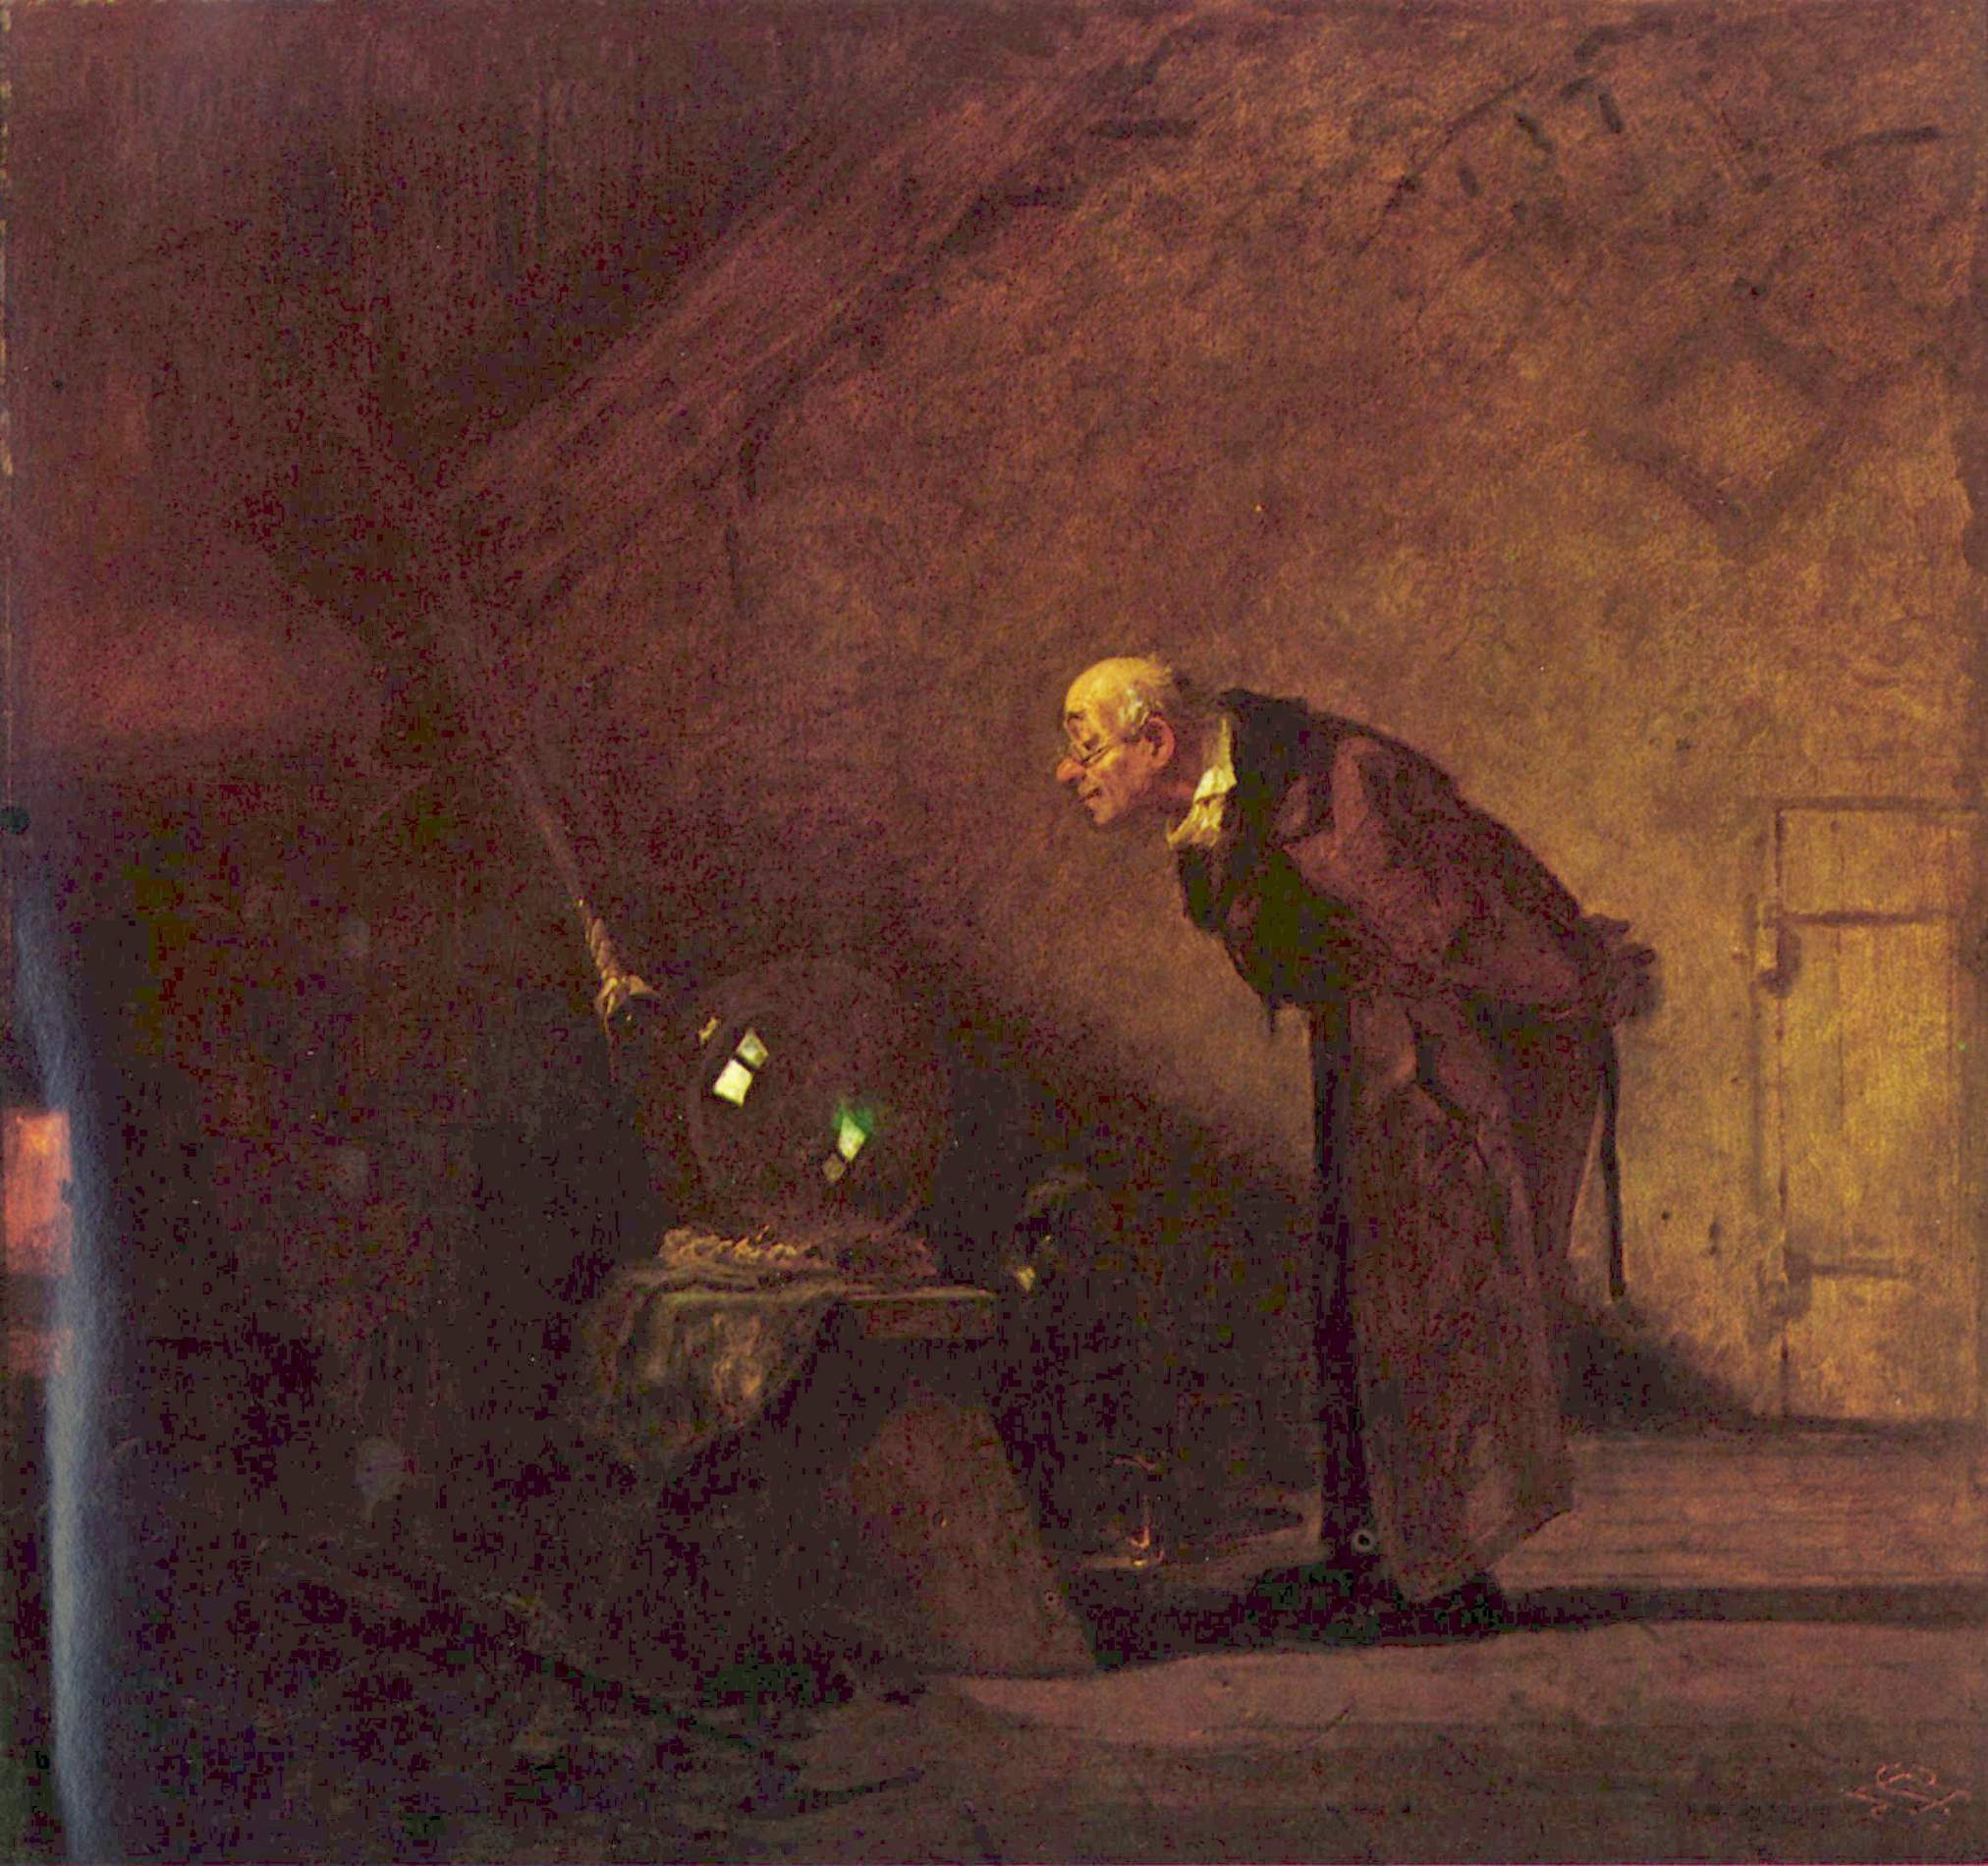 Carl Spitzweg [Public domain], via Wikimedia Commons